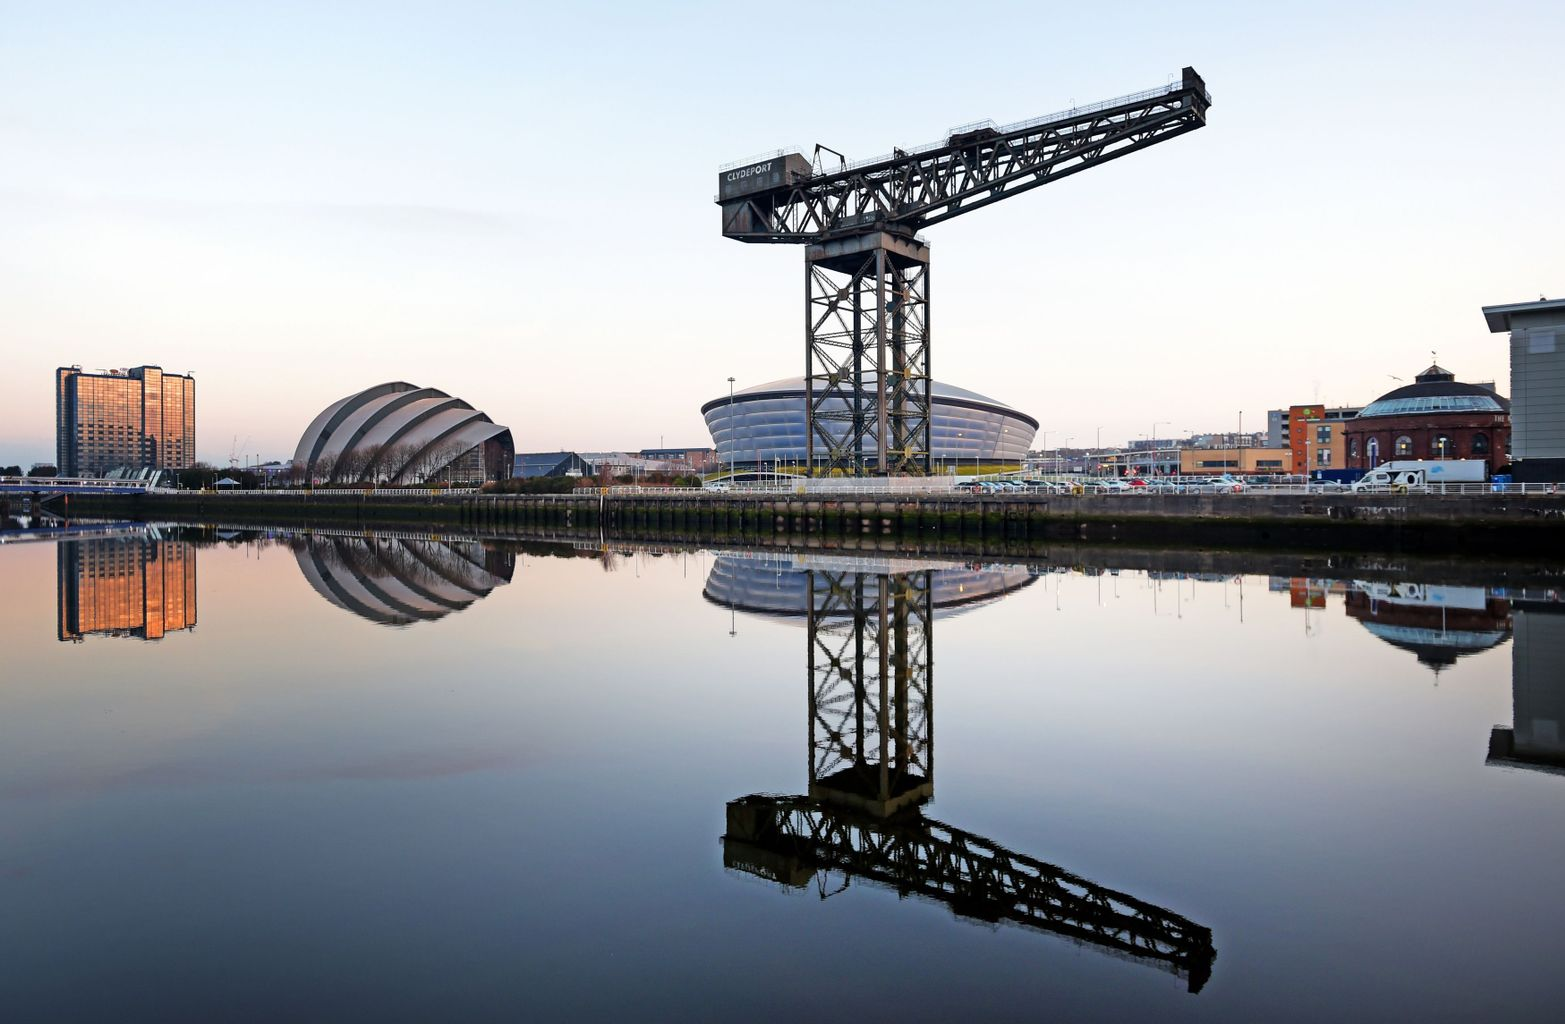 Glasgow to host Scotland's first ever Autism show